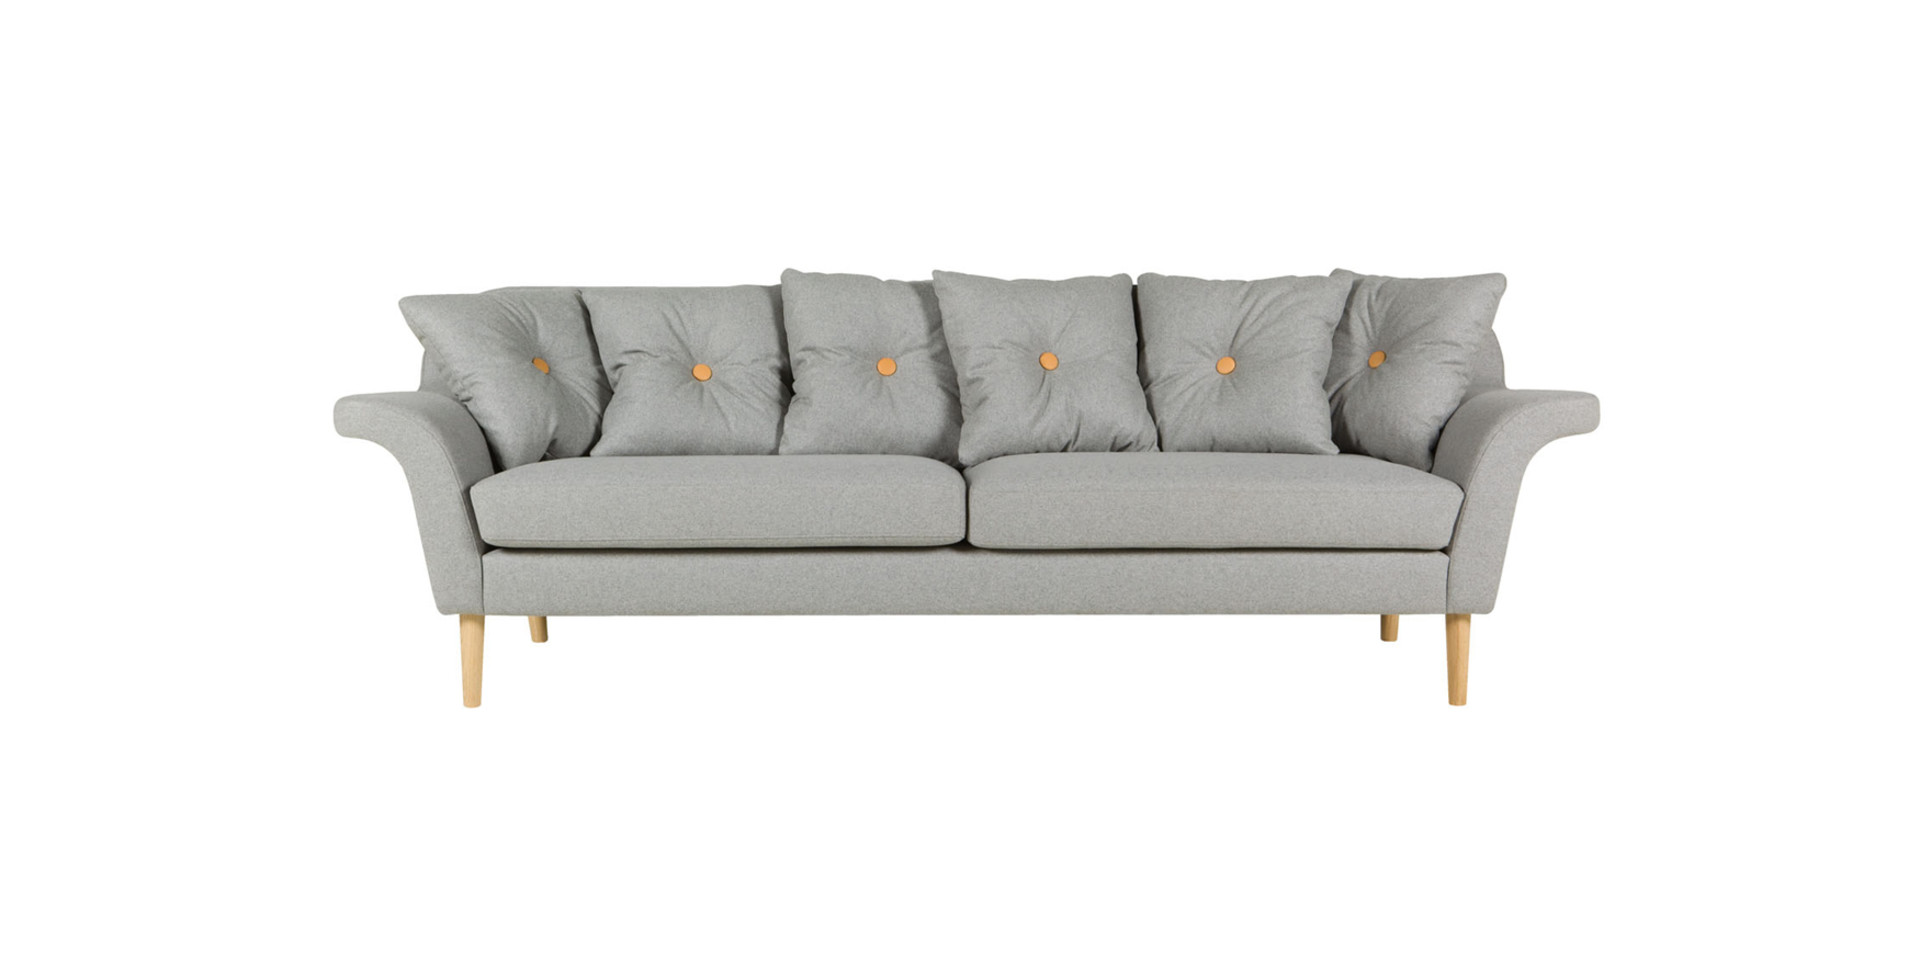 sits-poppy-canape-3seater_panno1000_light_grey_1